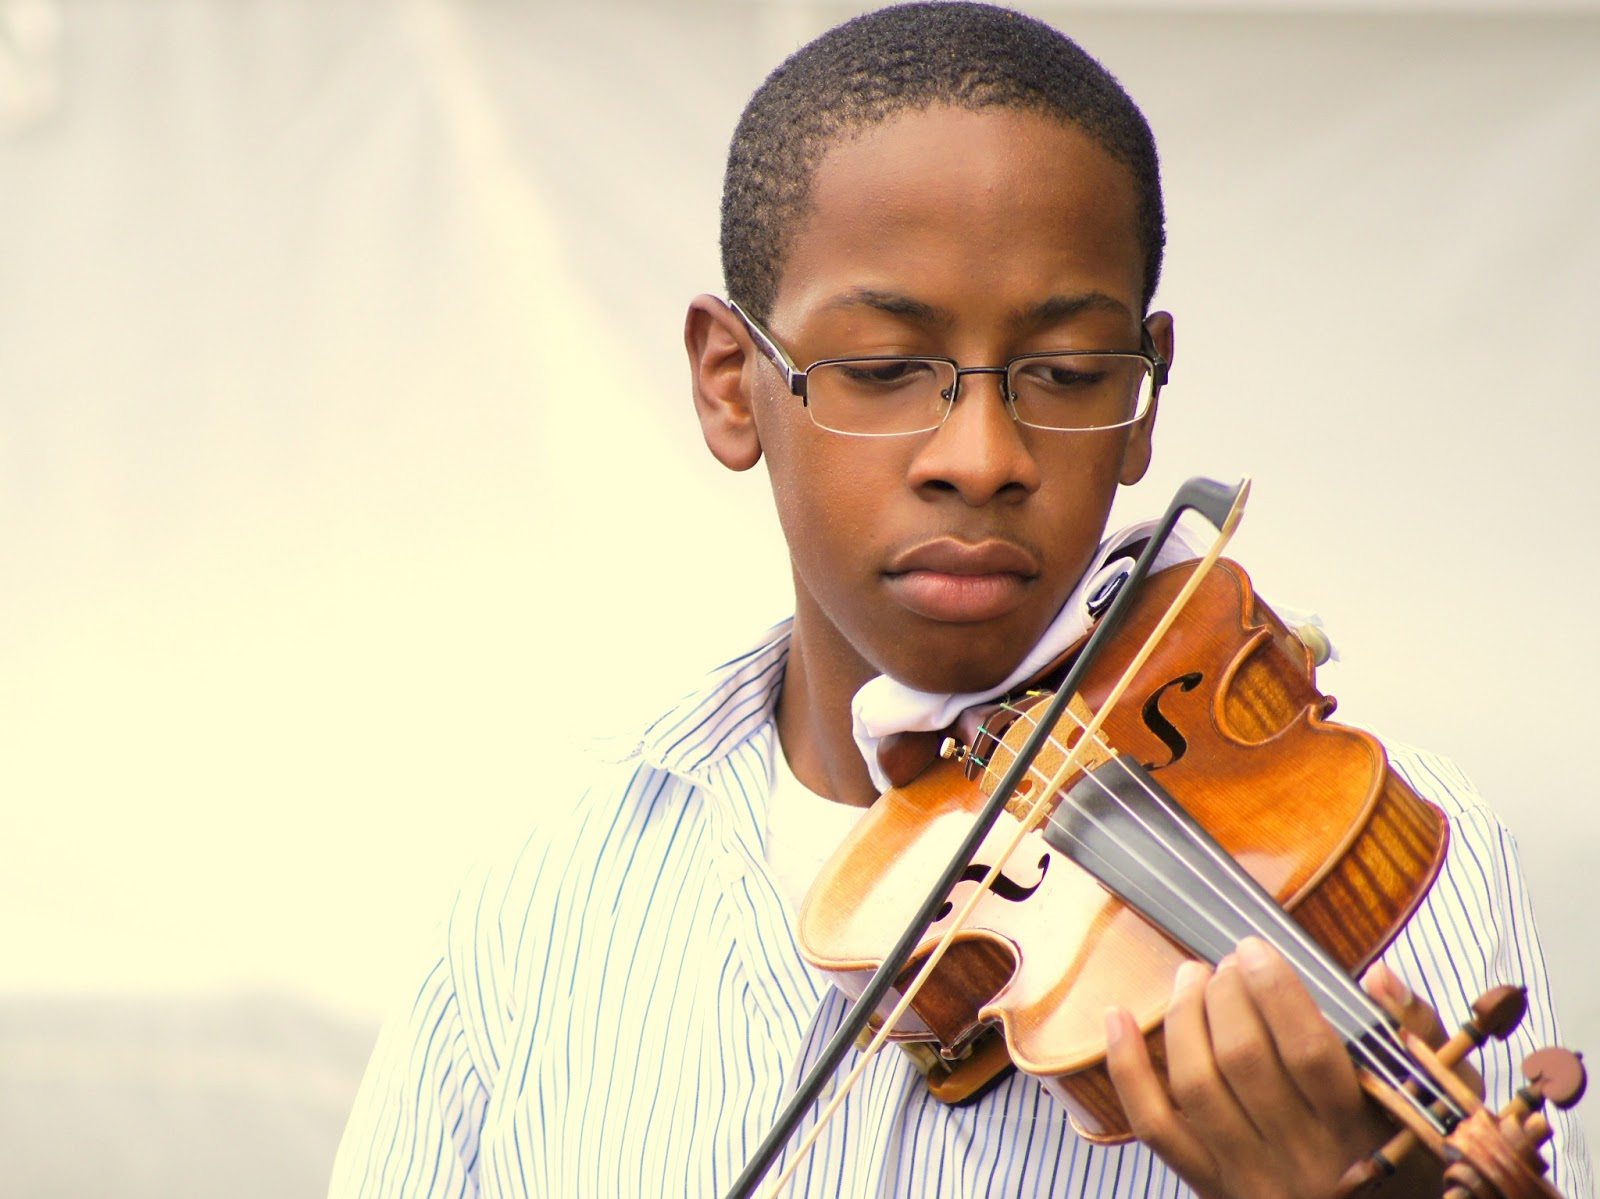 young street violinist in Savannah